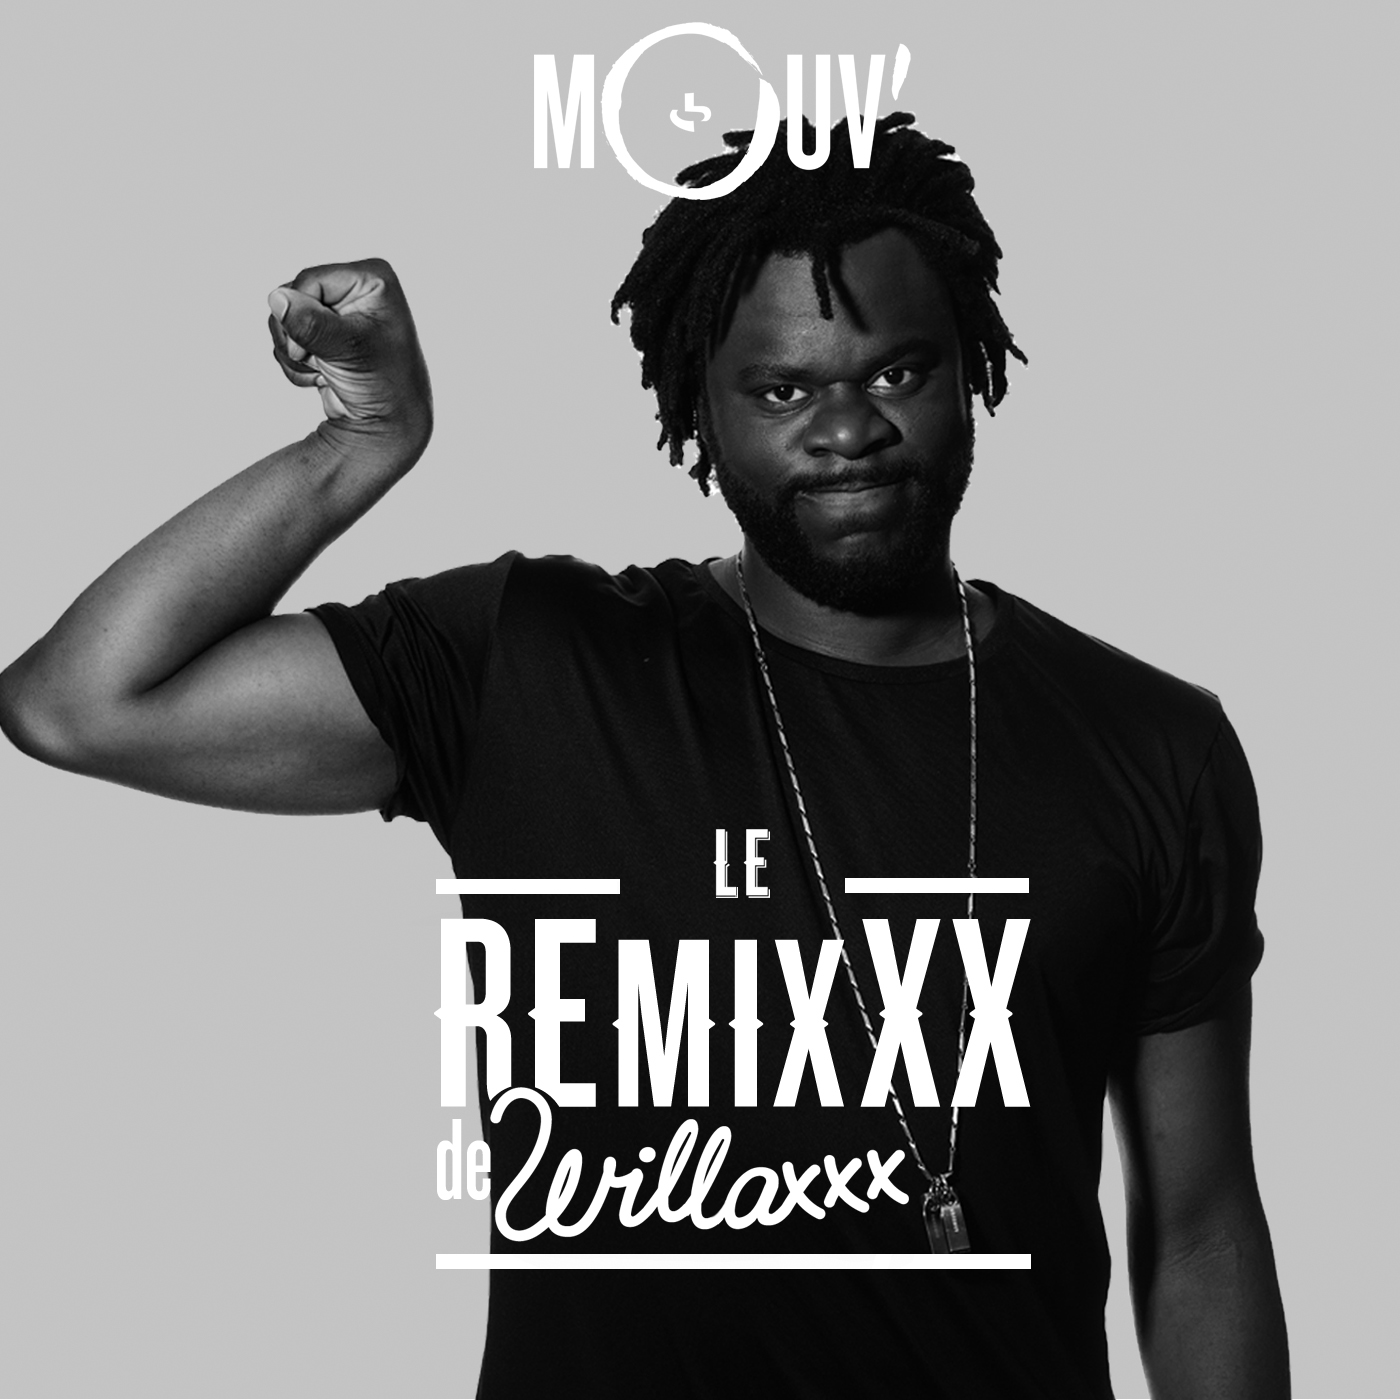 Le remixxx de Willaxxx